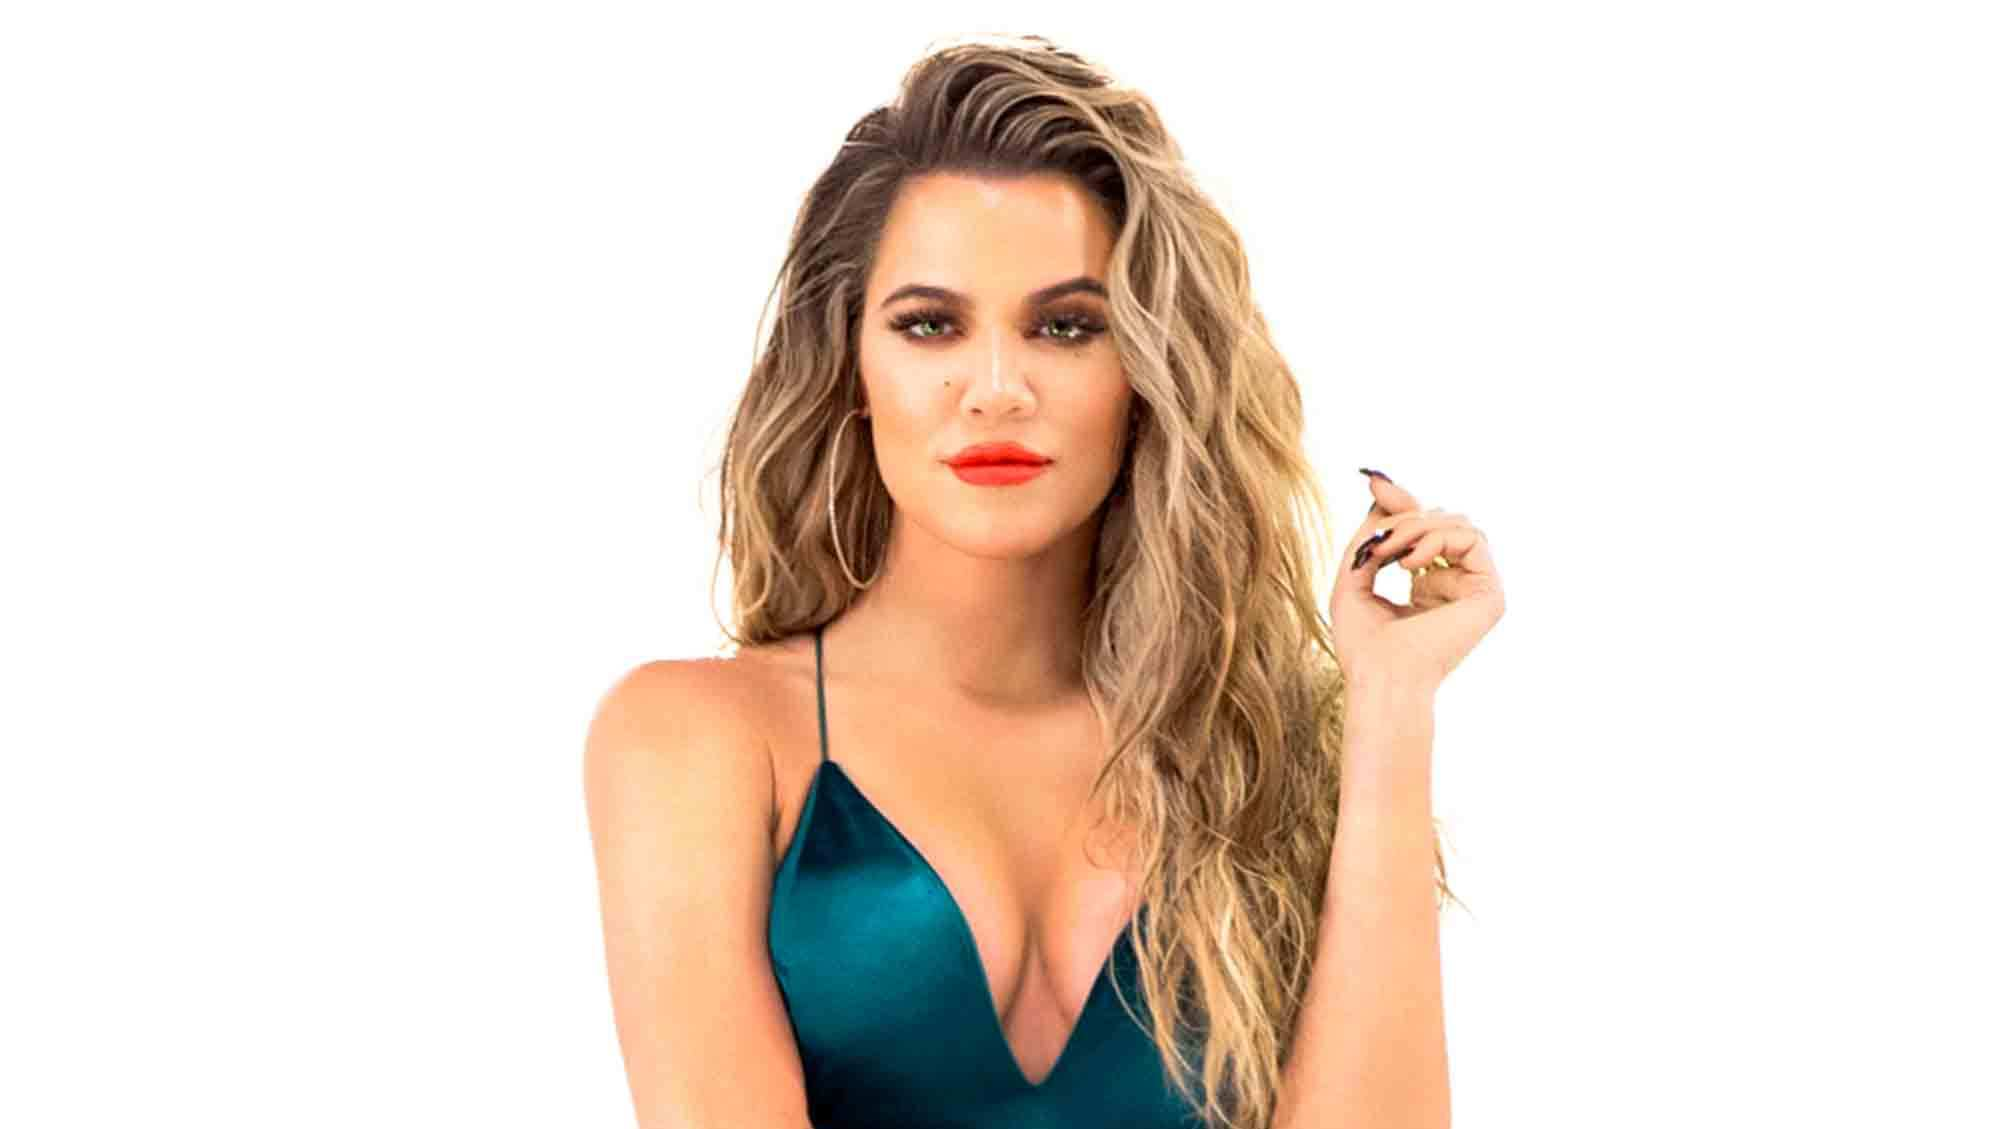 Khloe Kardashian on 'Revenge Body'